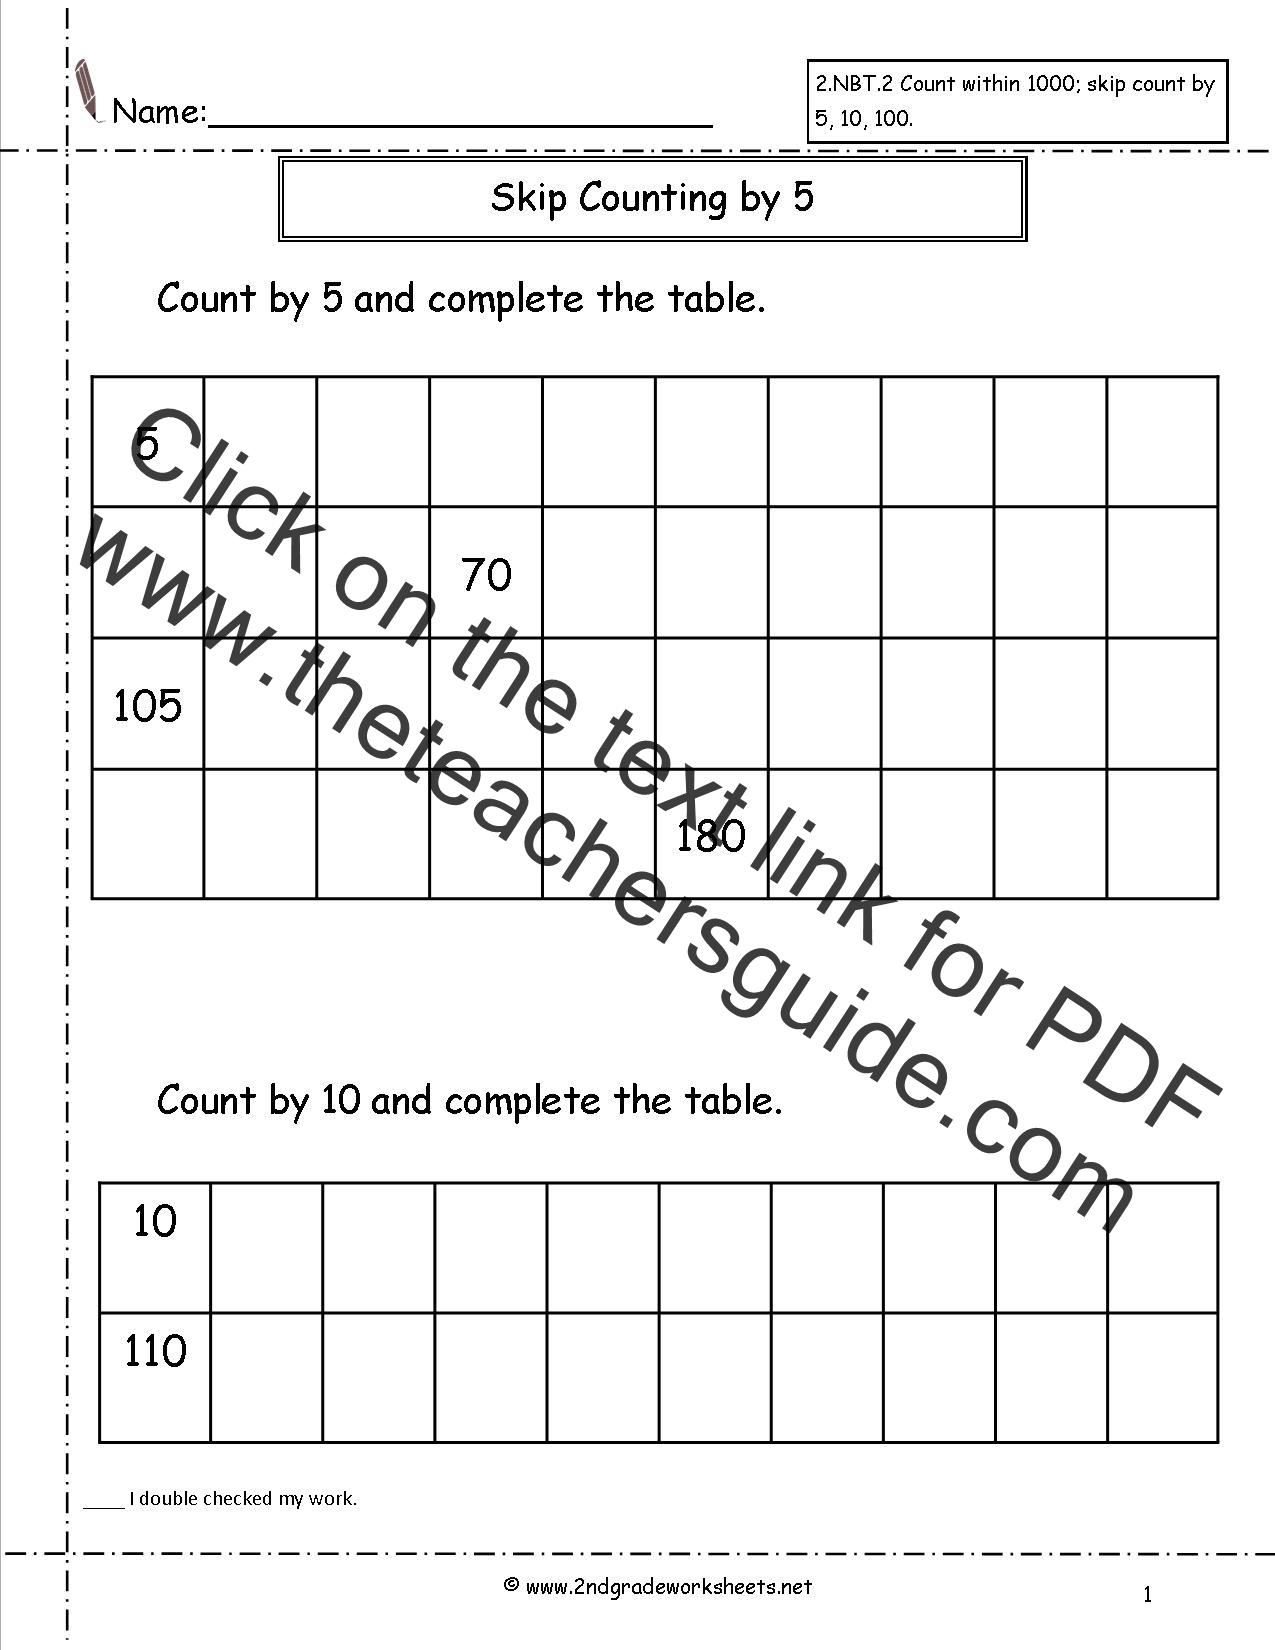 worksheet Skip Counting By 10 Worksheets free skip counting worksheets count by 5 and 10